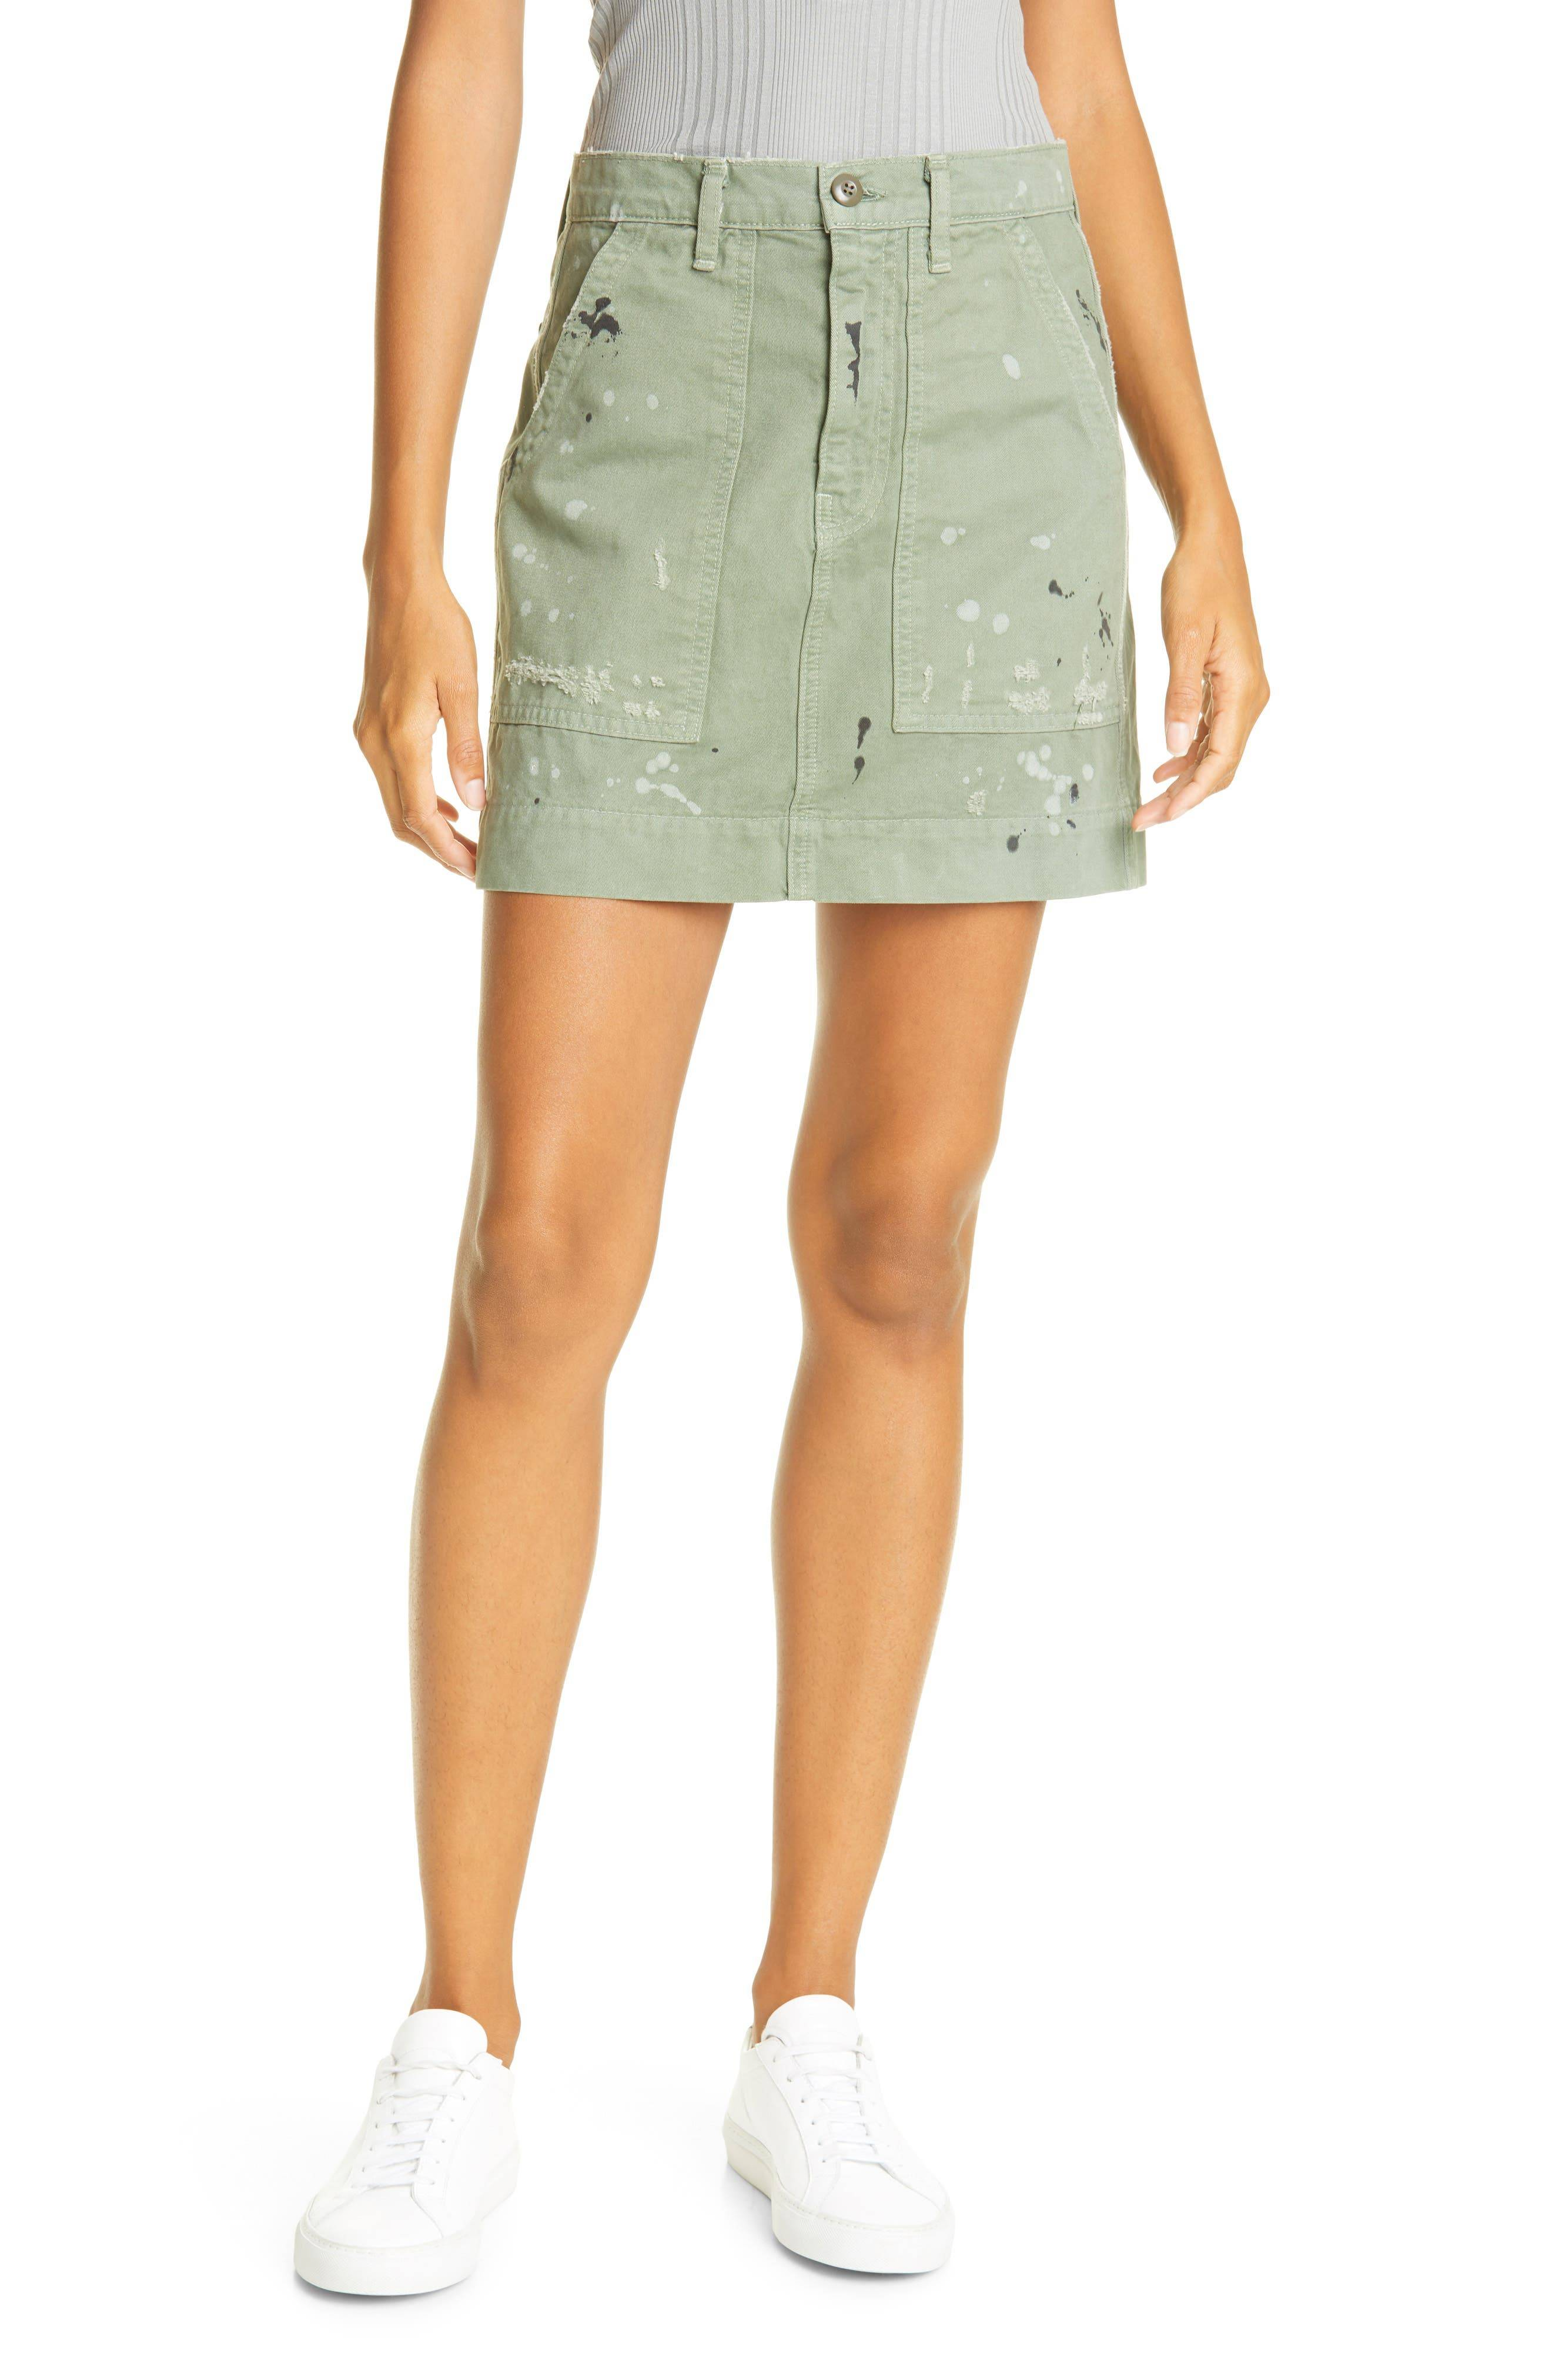 NSF Clothing Women's Nsf Clothing Goldie Painted Miniskirt, Size 27 - Green